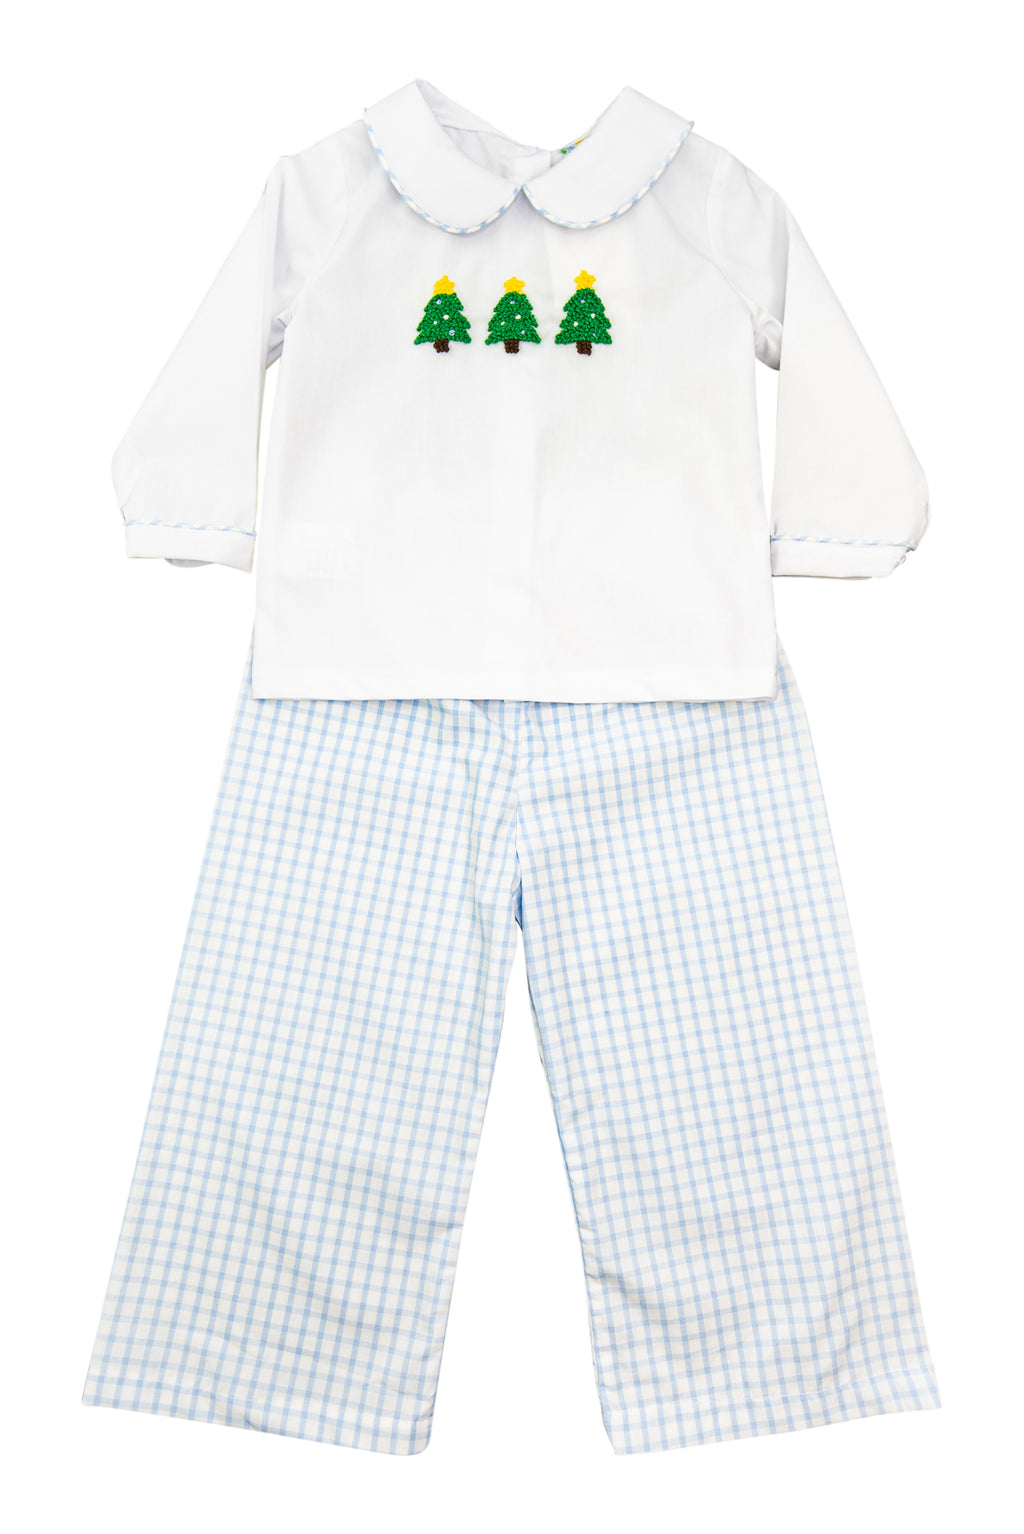 Boys French Knot Christmas Tree Pant Set